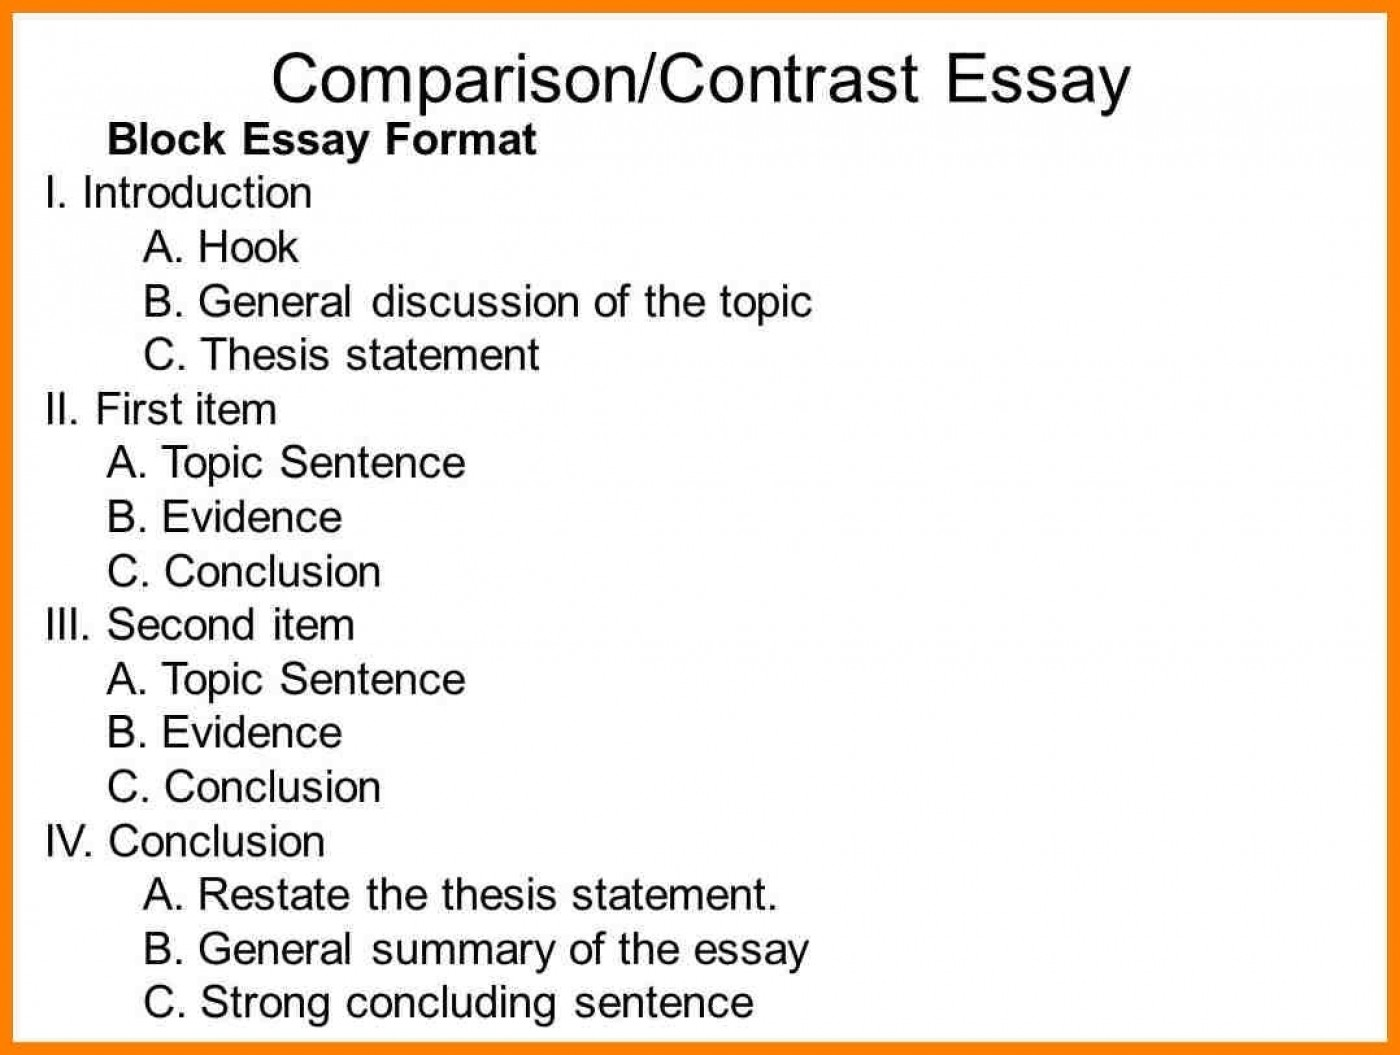 016 Compare Contrast Essay Outline For Slide Entire Visualize Bleemoo Innd Block Method Example How To Awesome A And Create An 1400